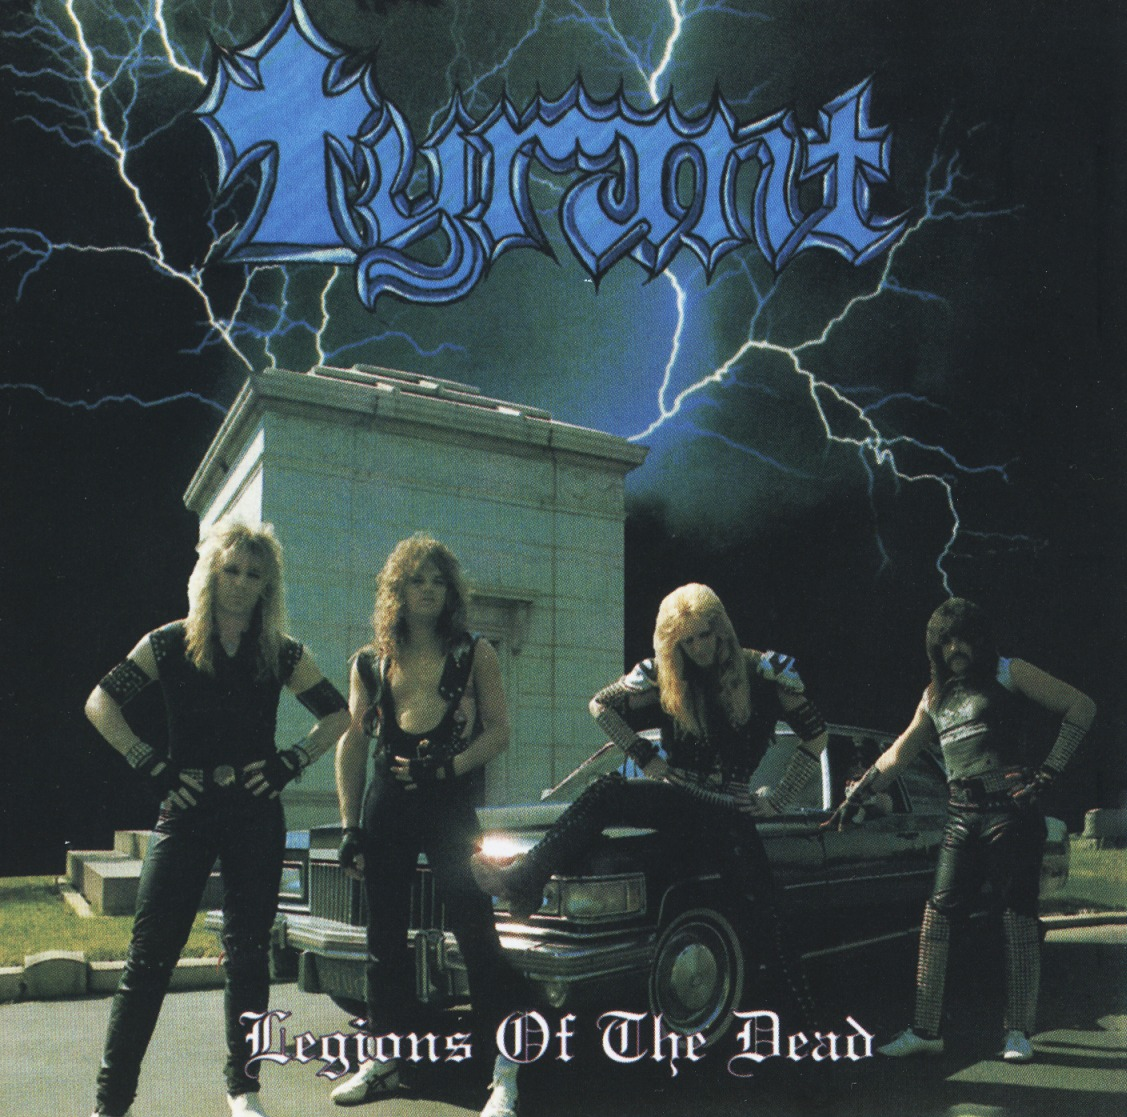 TYRANT (US) / Legions Of The Dead